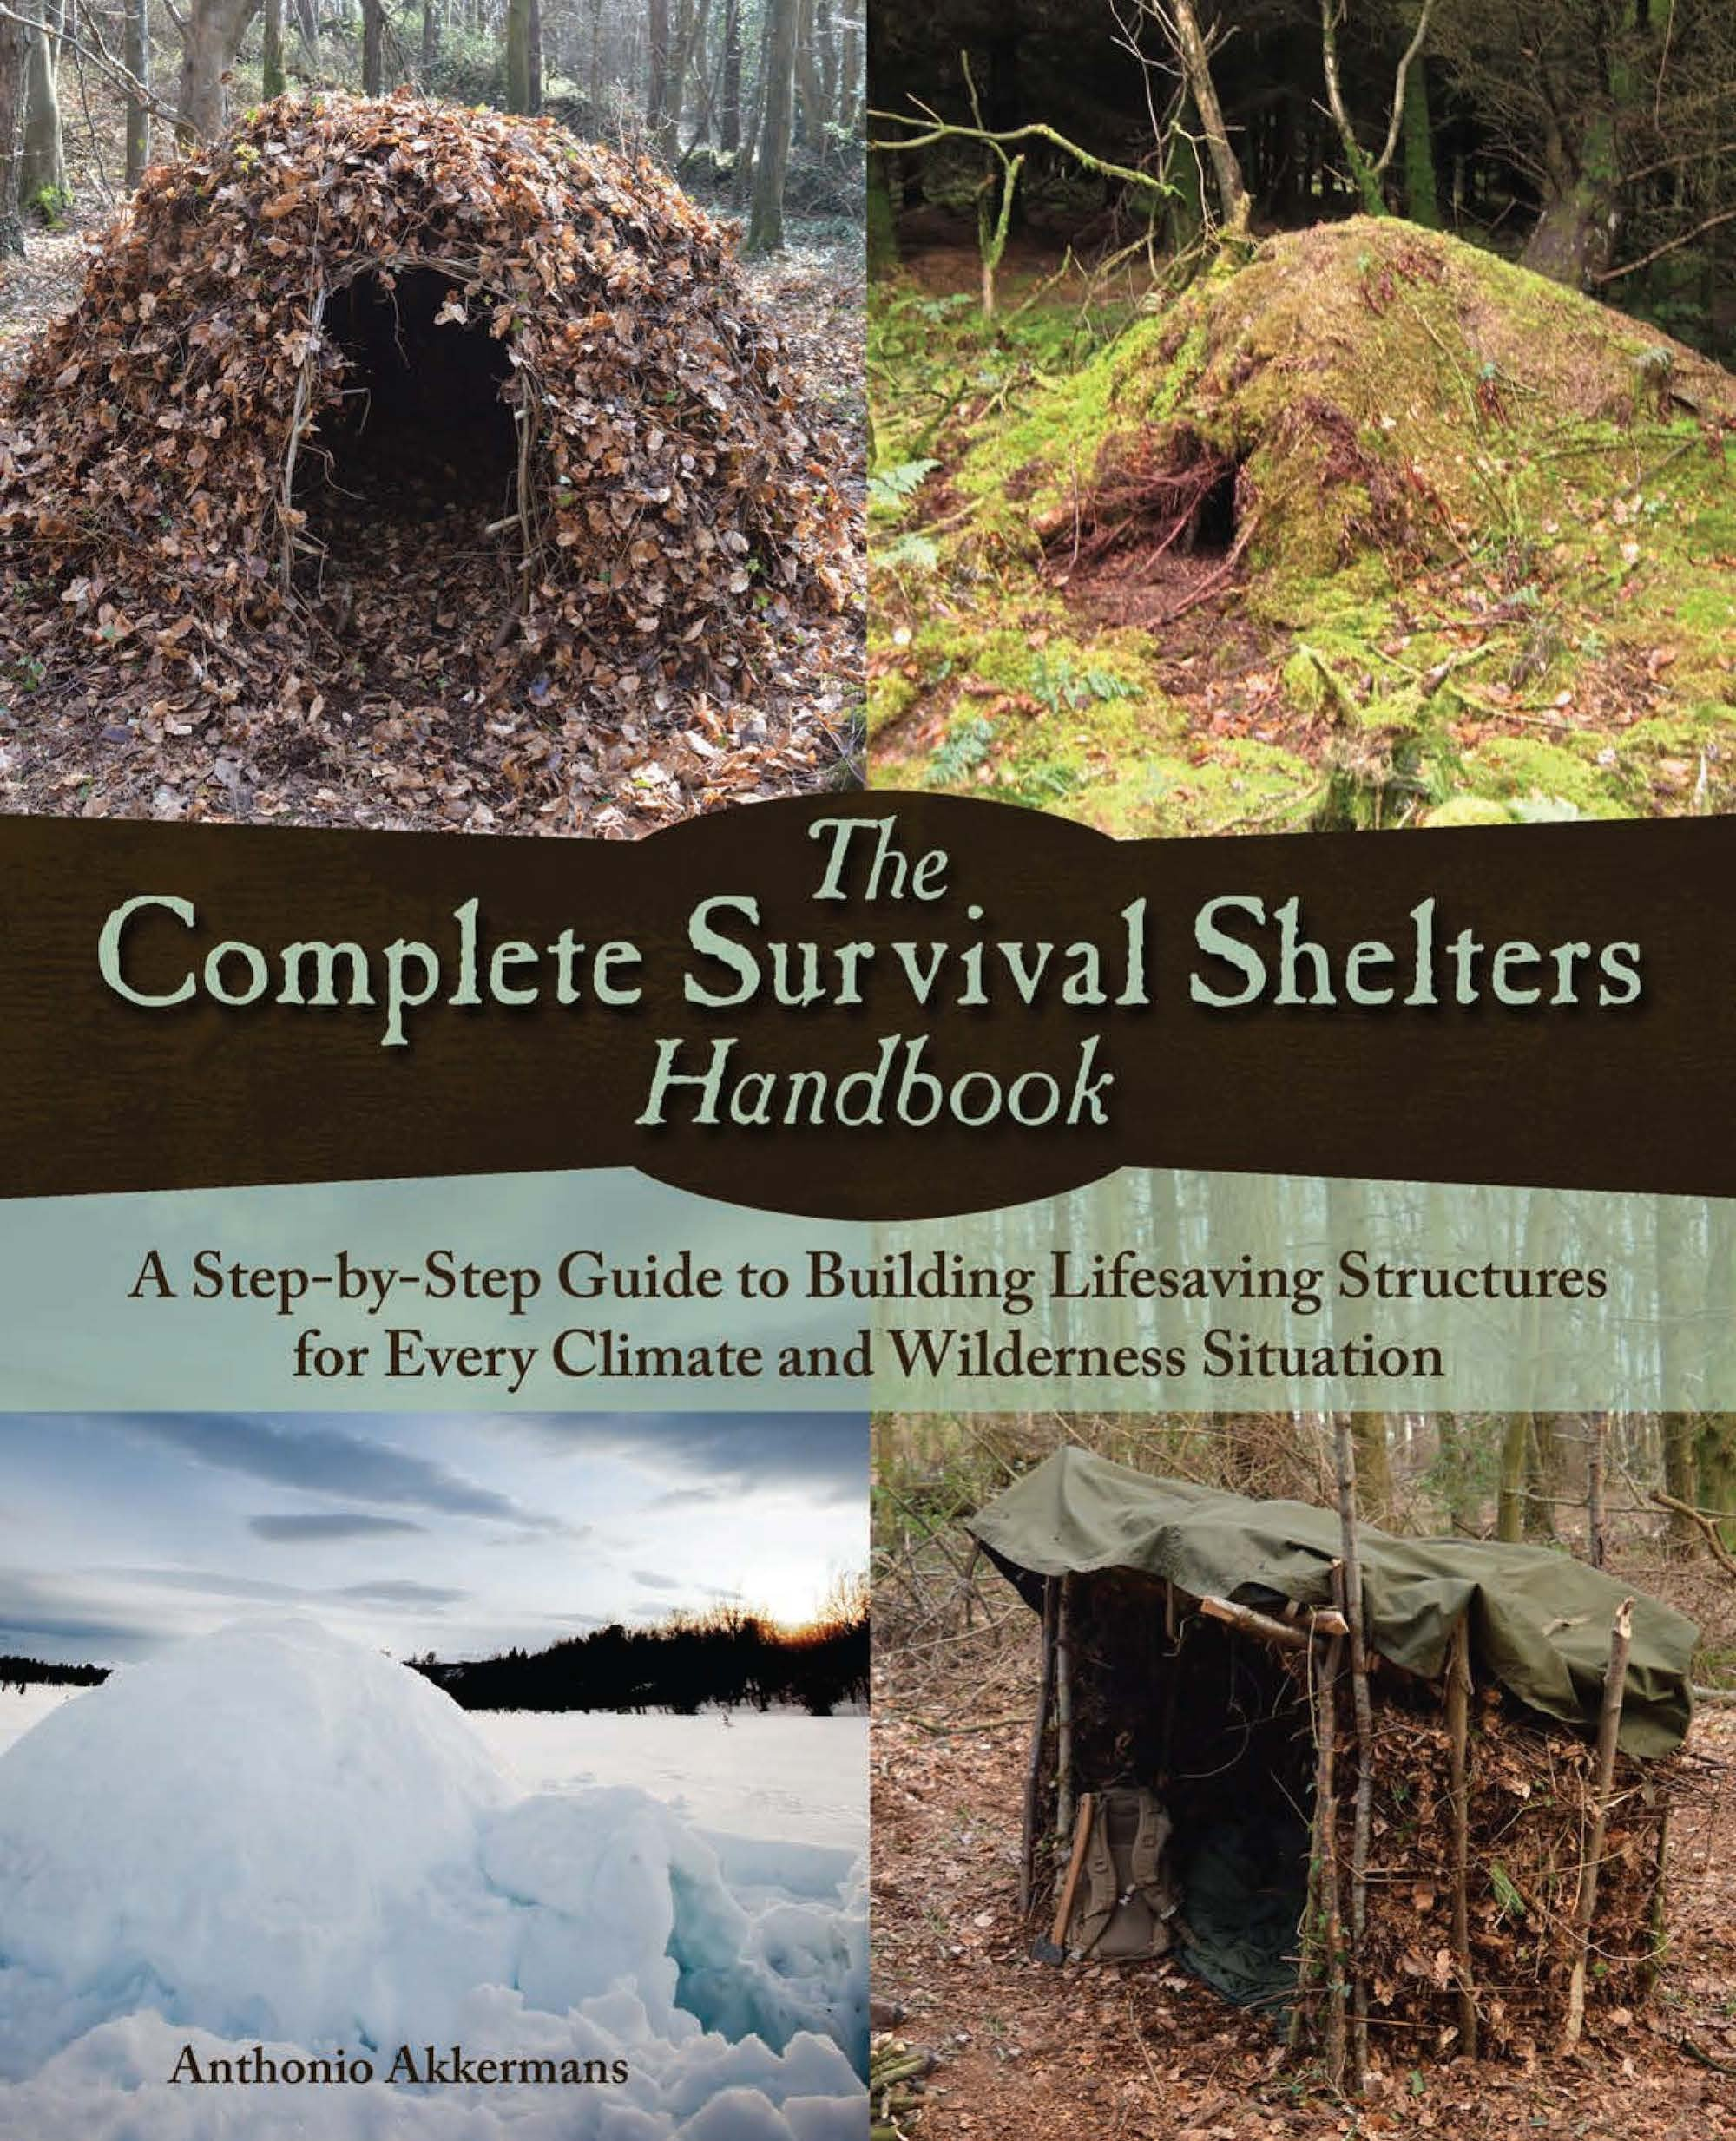 The complete survival shelters handbook a step by step guide to building life saving structures for every climate and wilderness situation anthonio